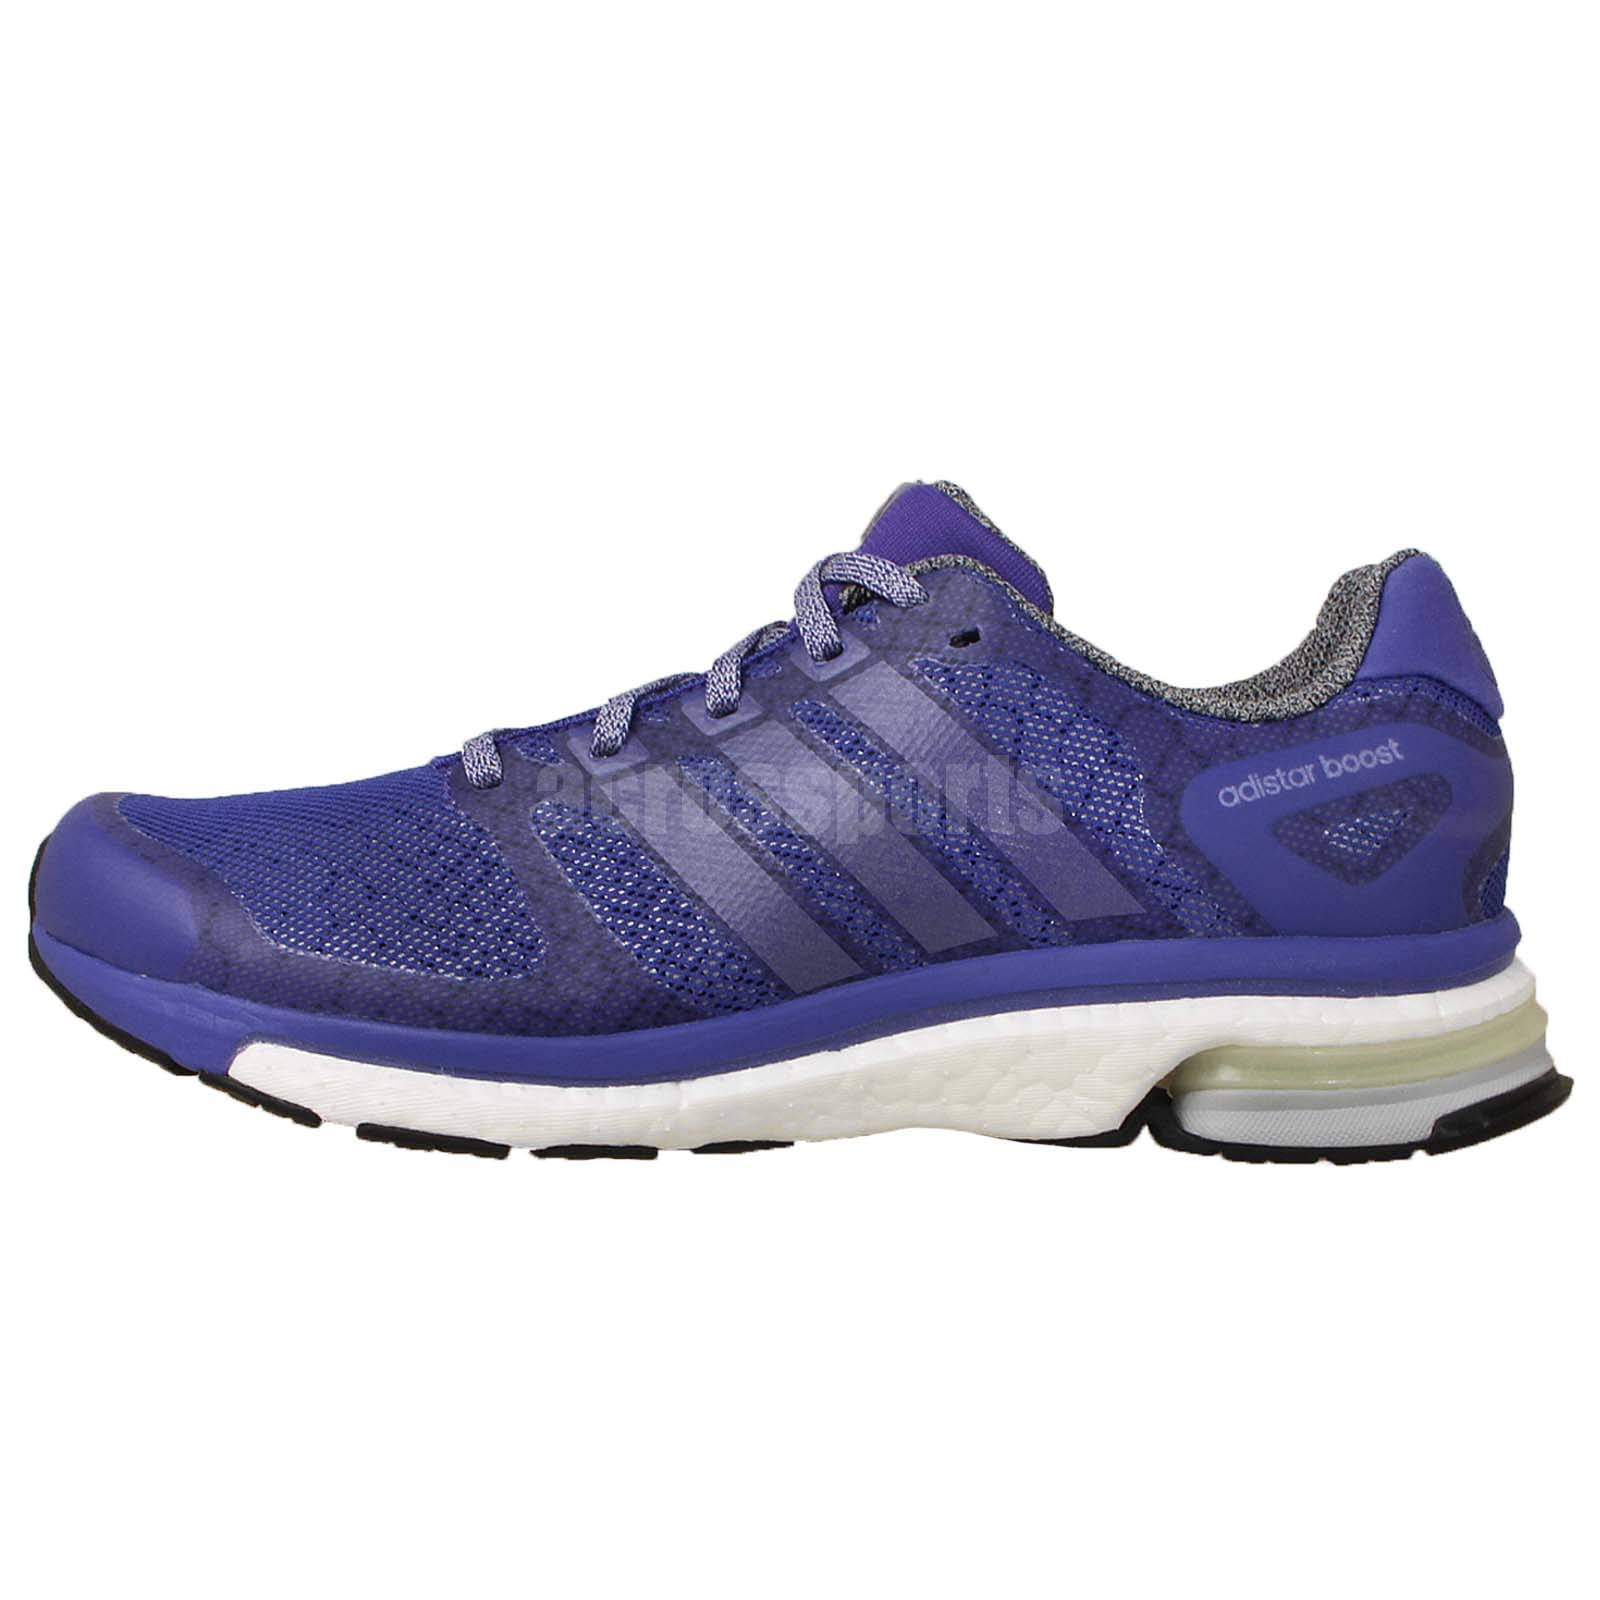 size 40 d3a8f 10887 adidas adistar boost ladies running shoes